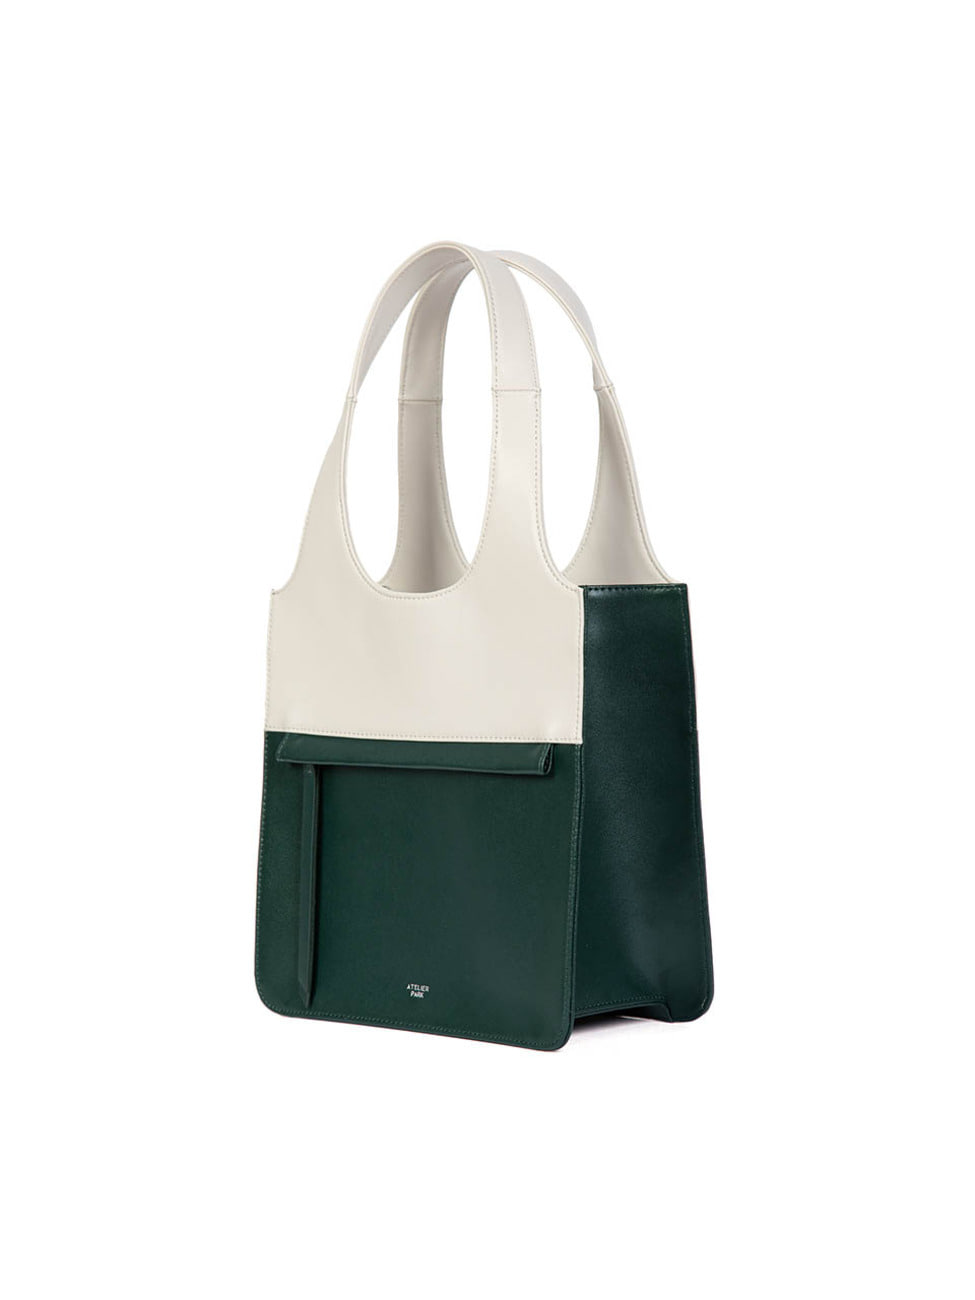 LINE TOTE BAG - MINI _ Deep green